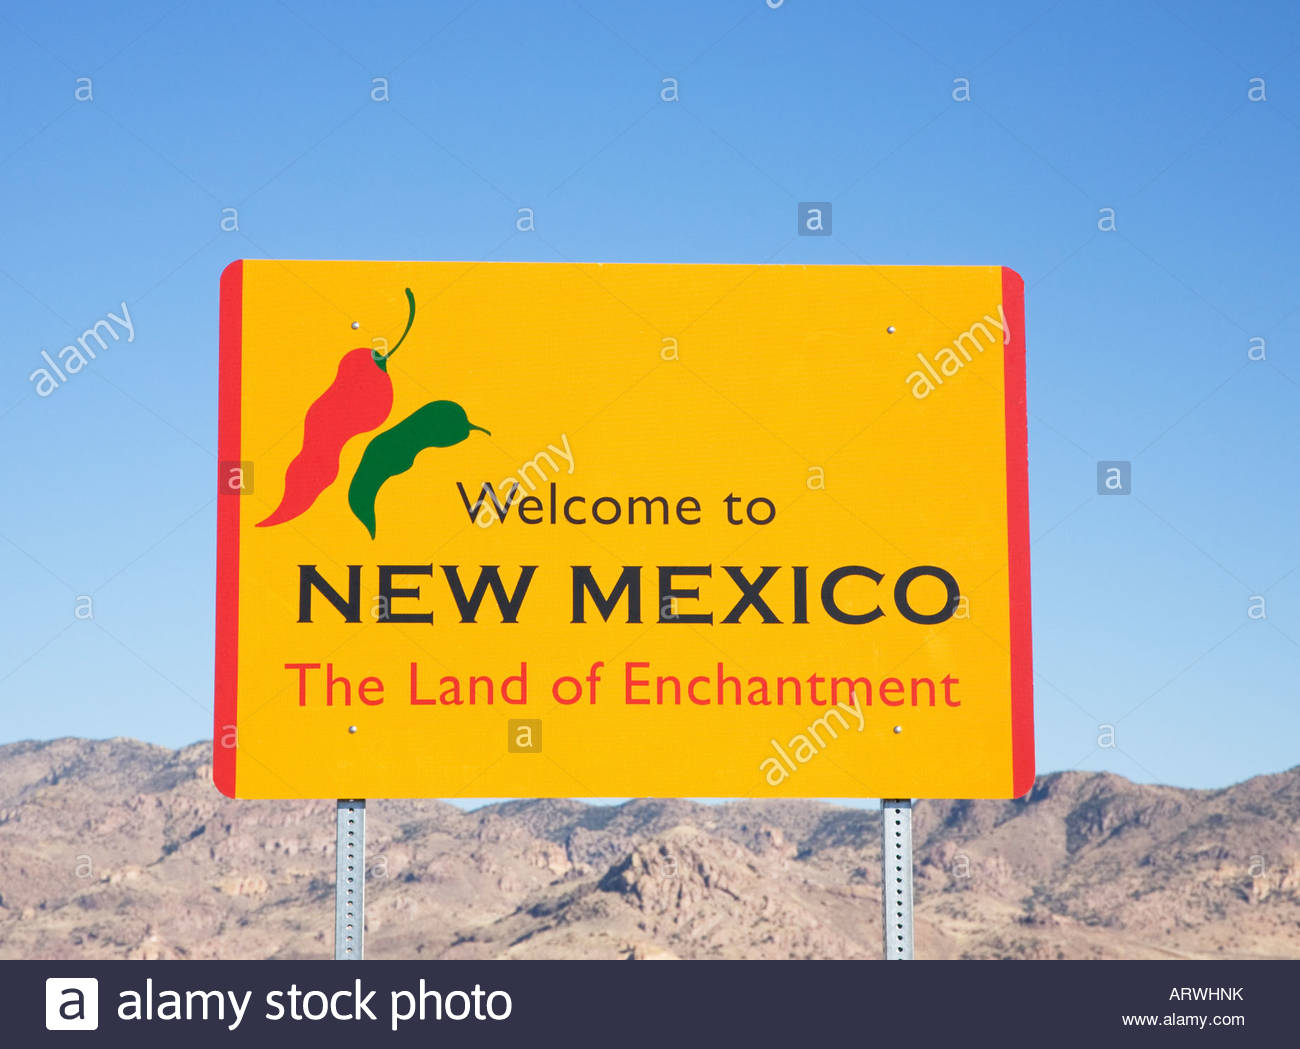 Highway sign Welcome to New Mexico The Land of Enchantment Portal Road Hidalgo County Chili peppers - Stock Image